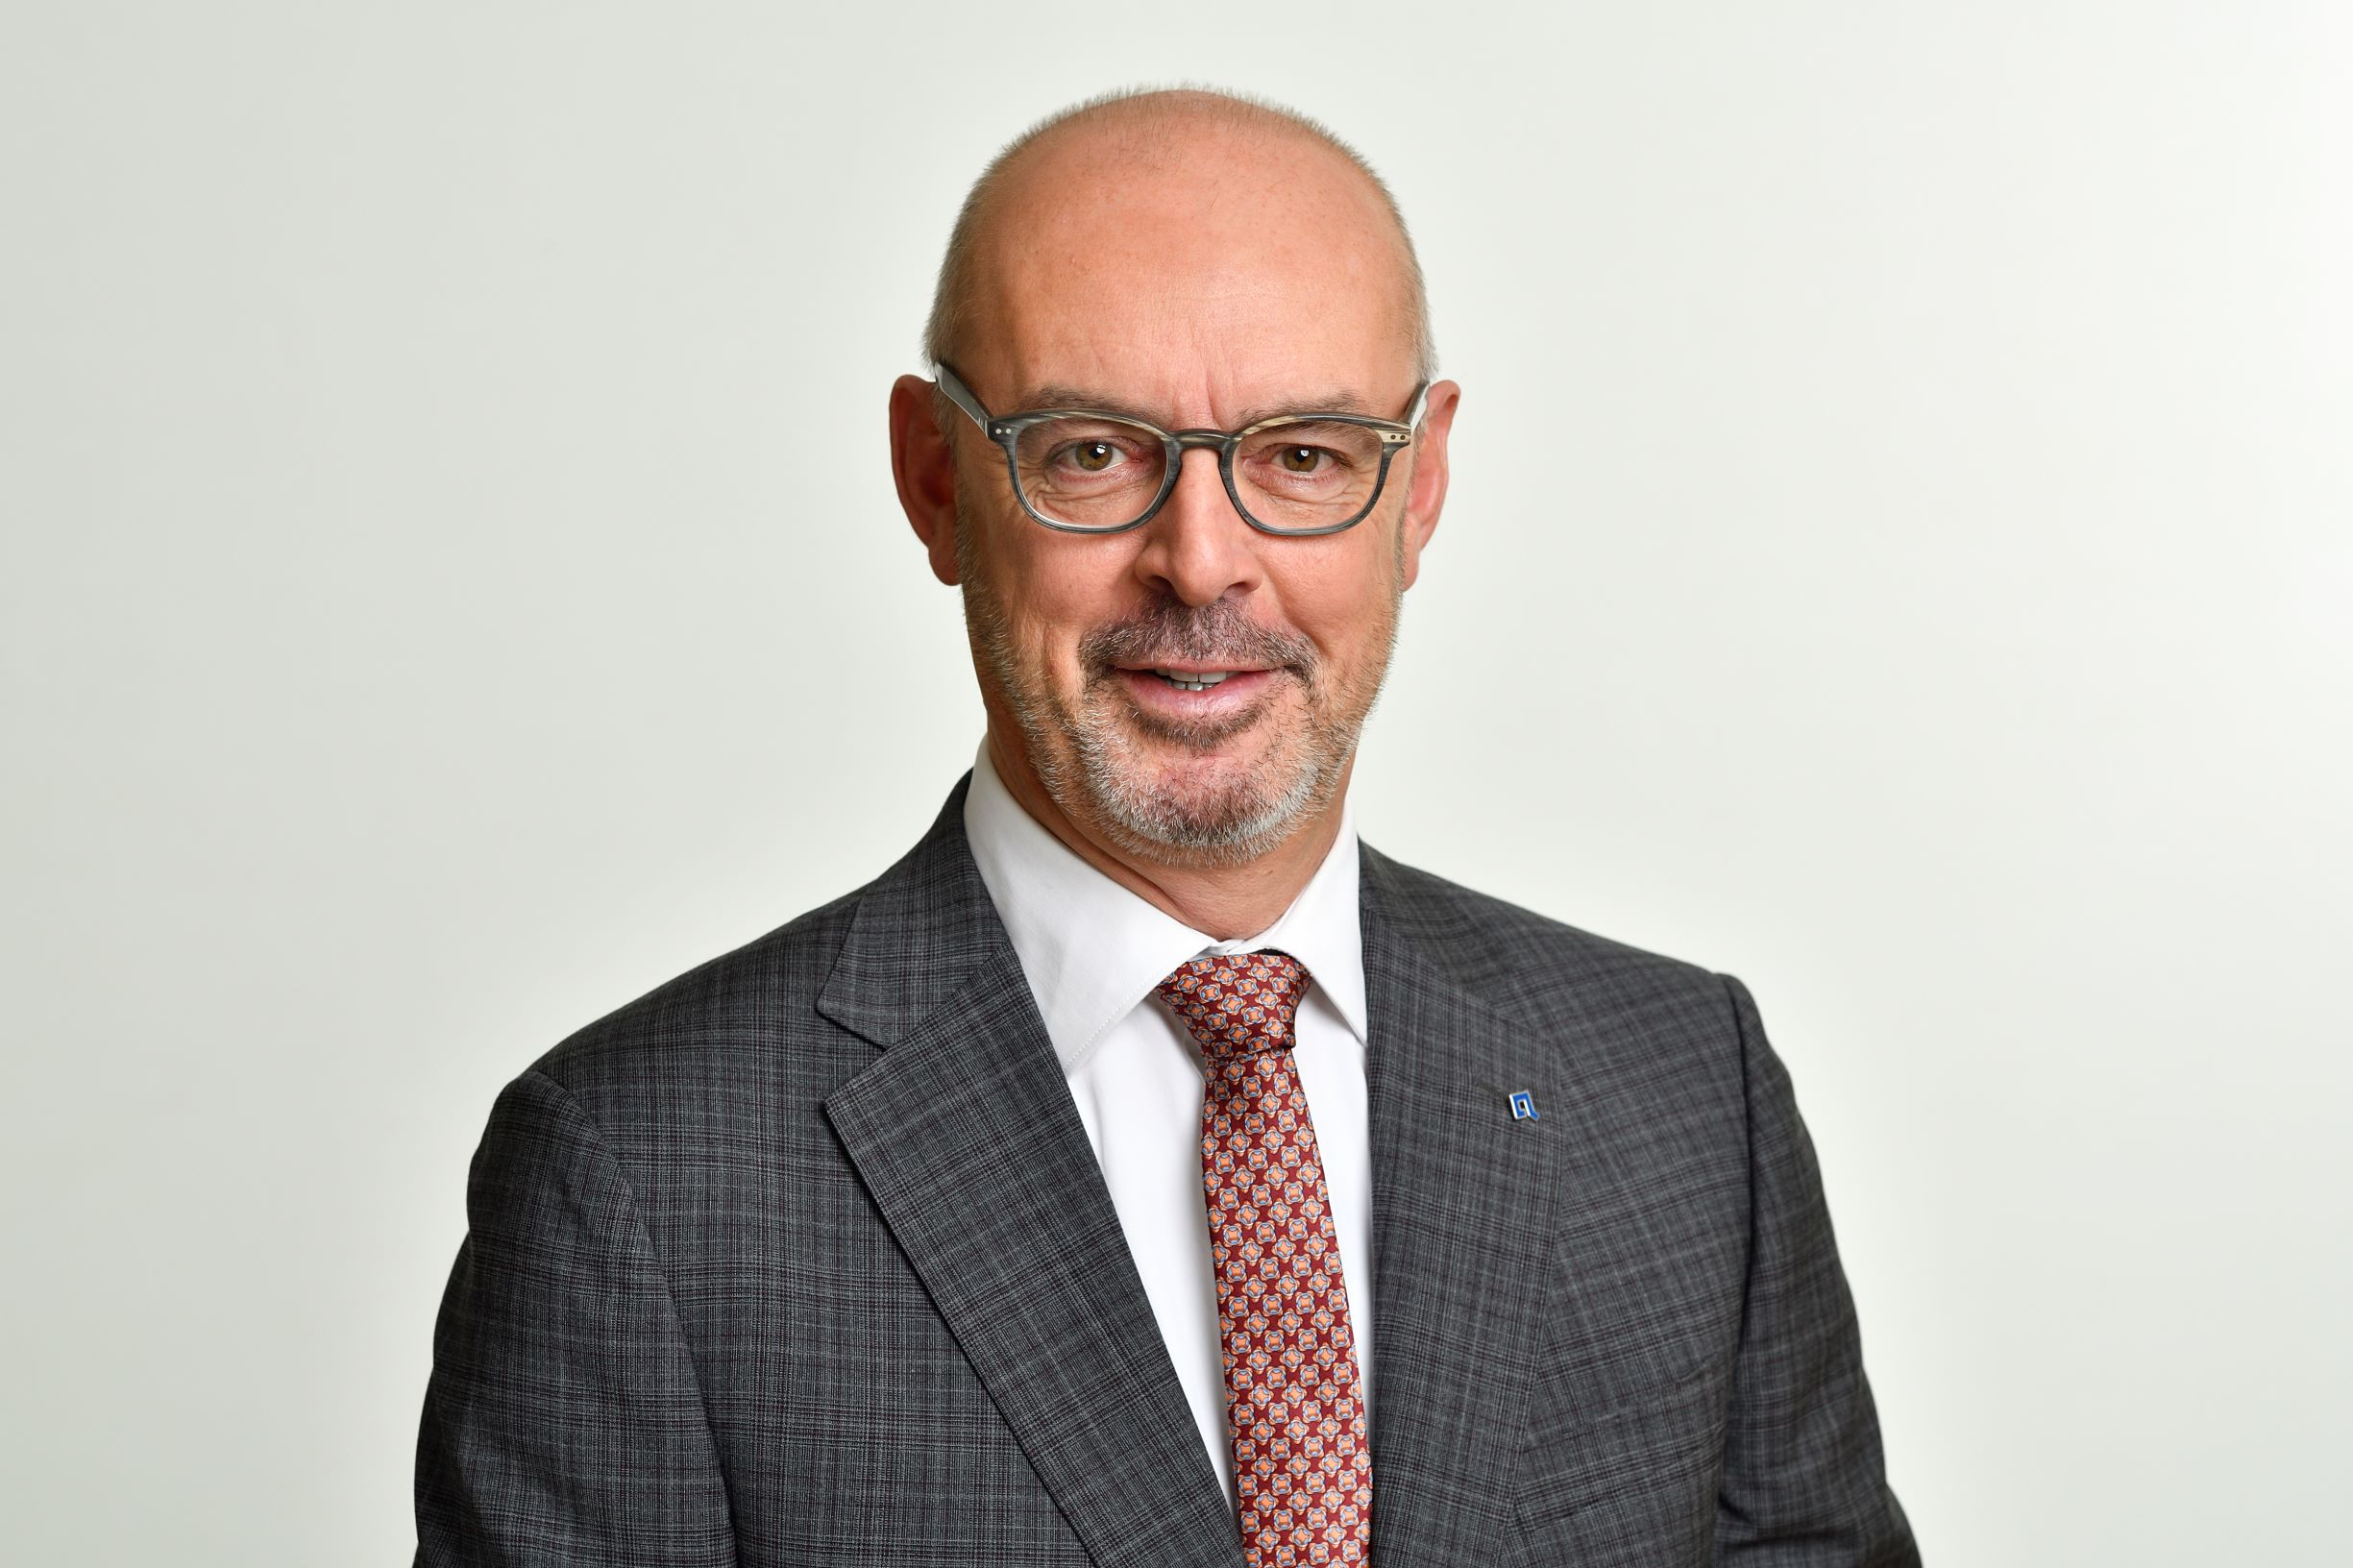 Gert De Winter, président de la direction du groupe de Baloise Group